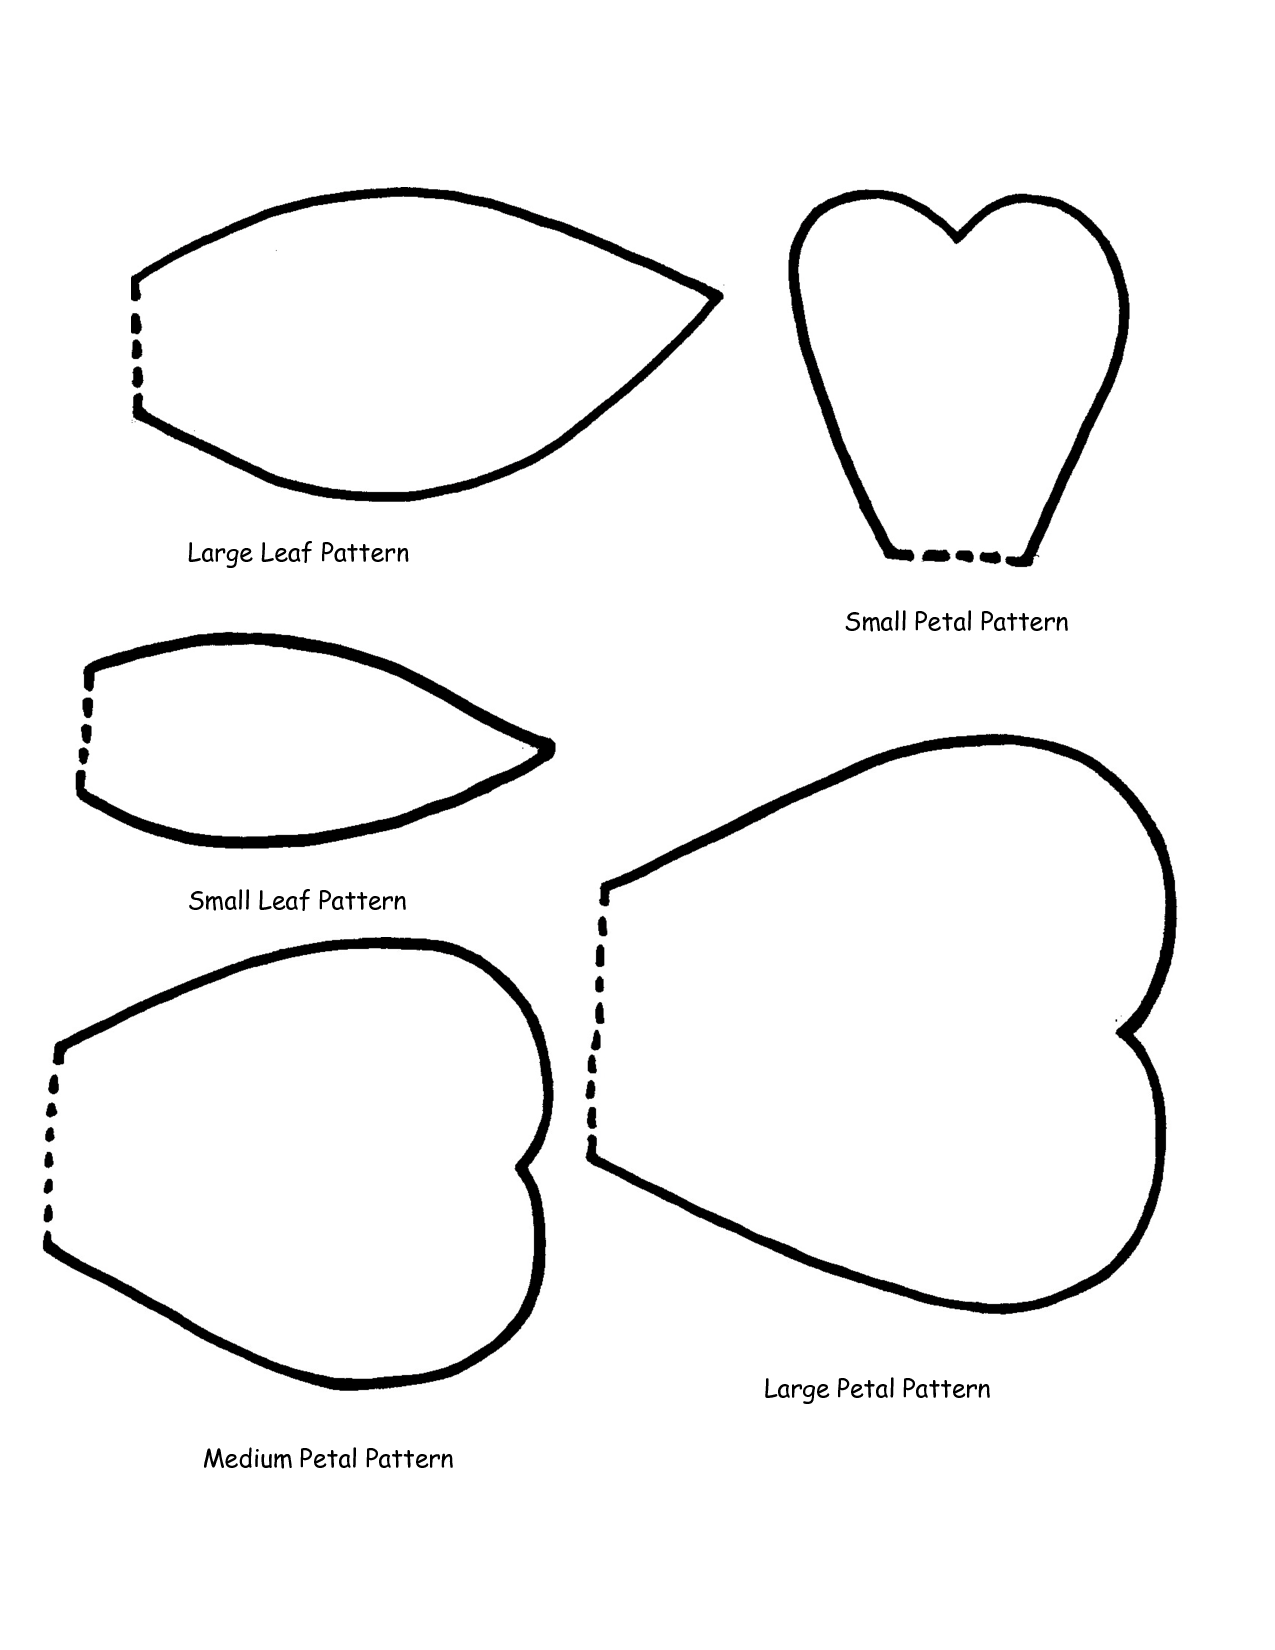 Flower petal templates clipart best clipart best meg flower petal templates clipart best clipart best pronofoot35fo Image collections